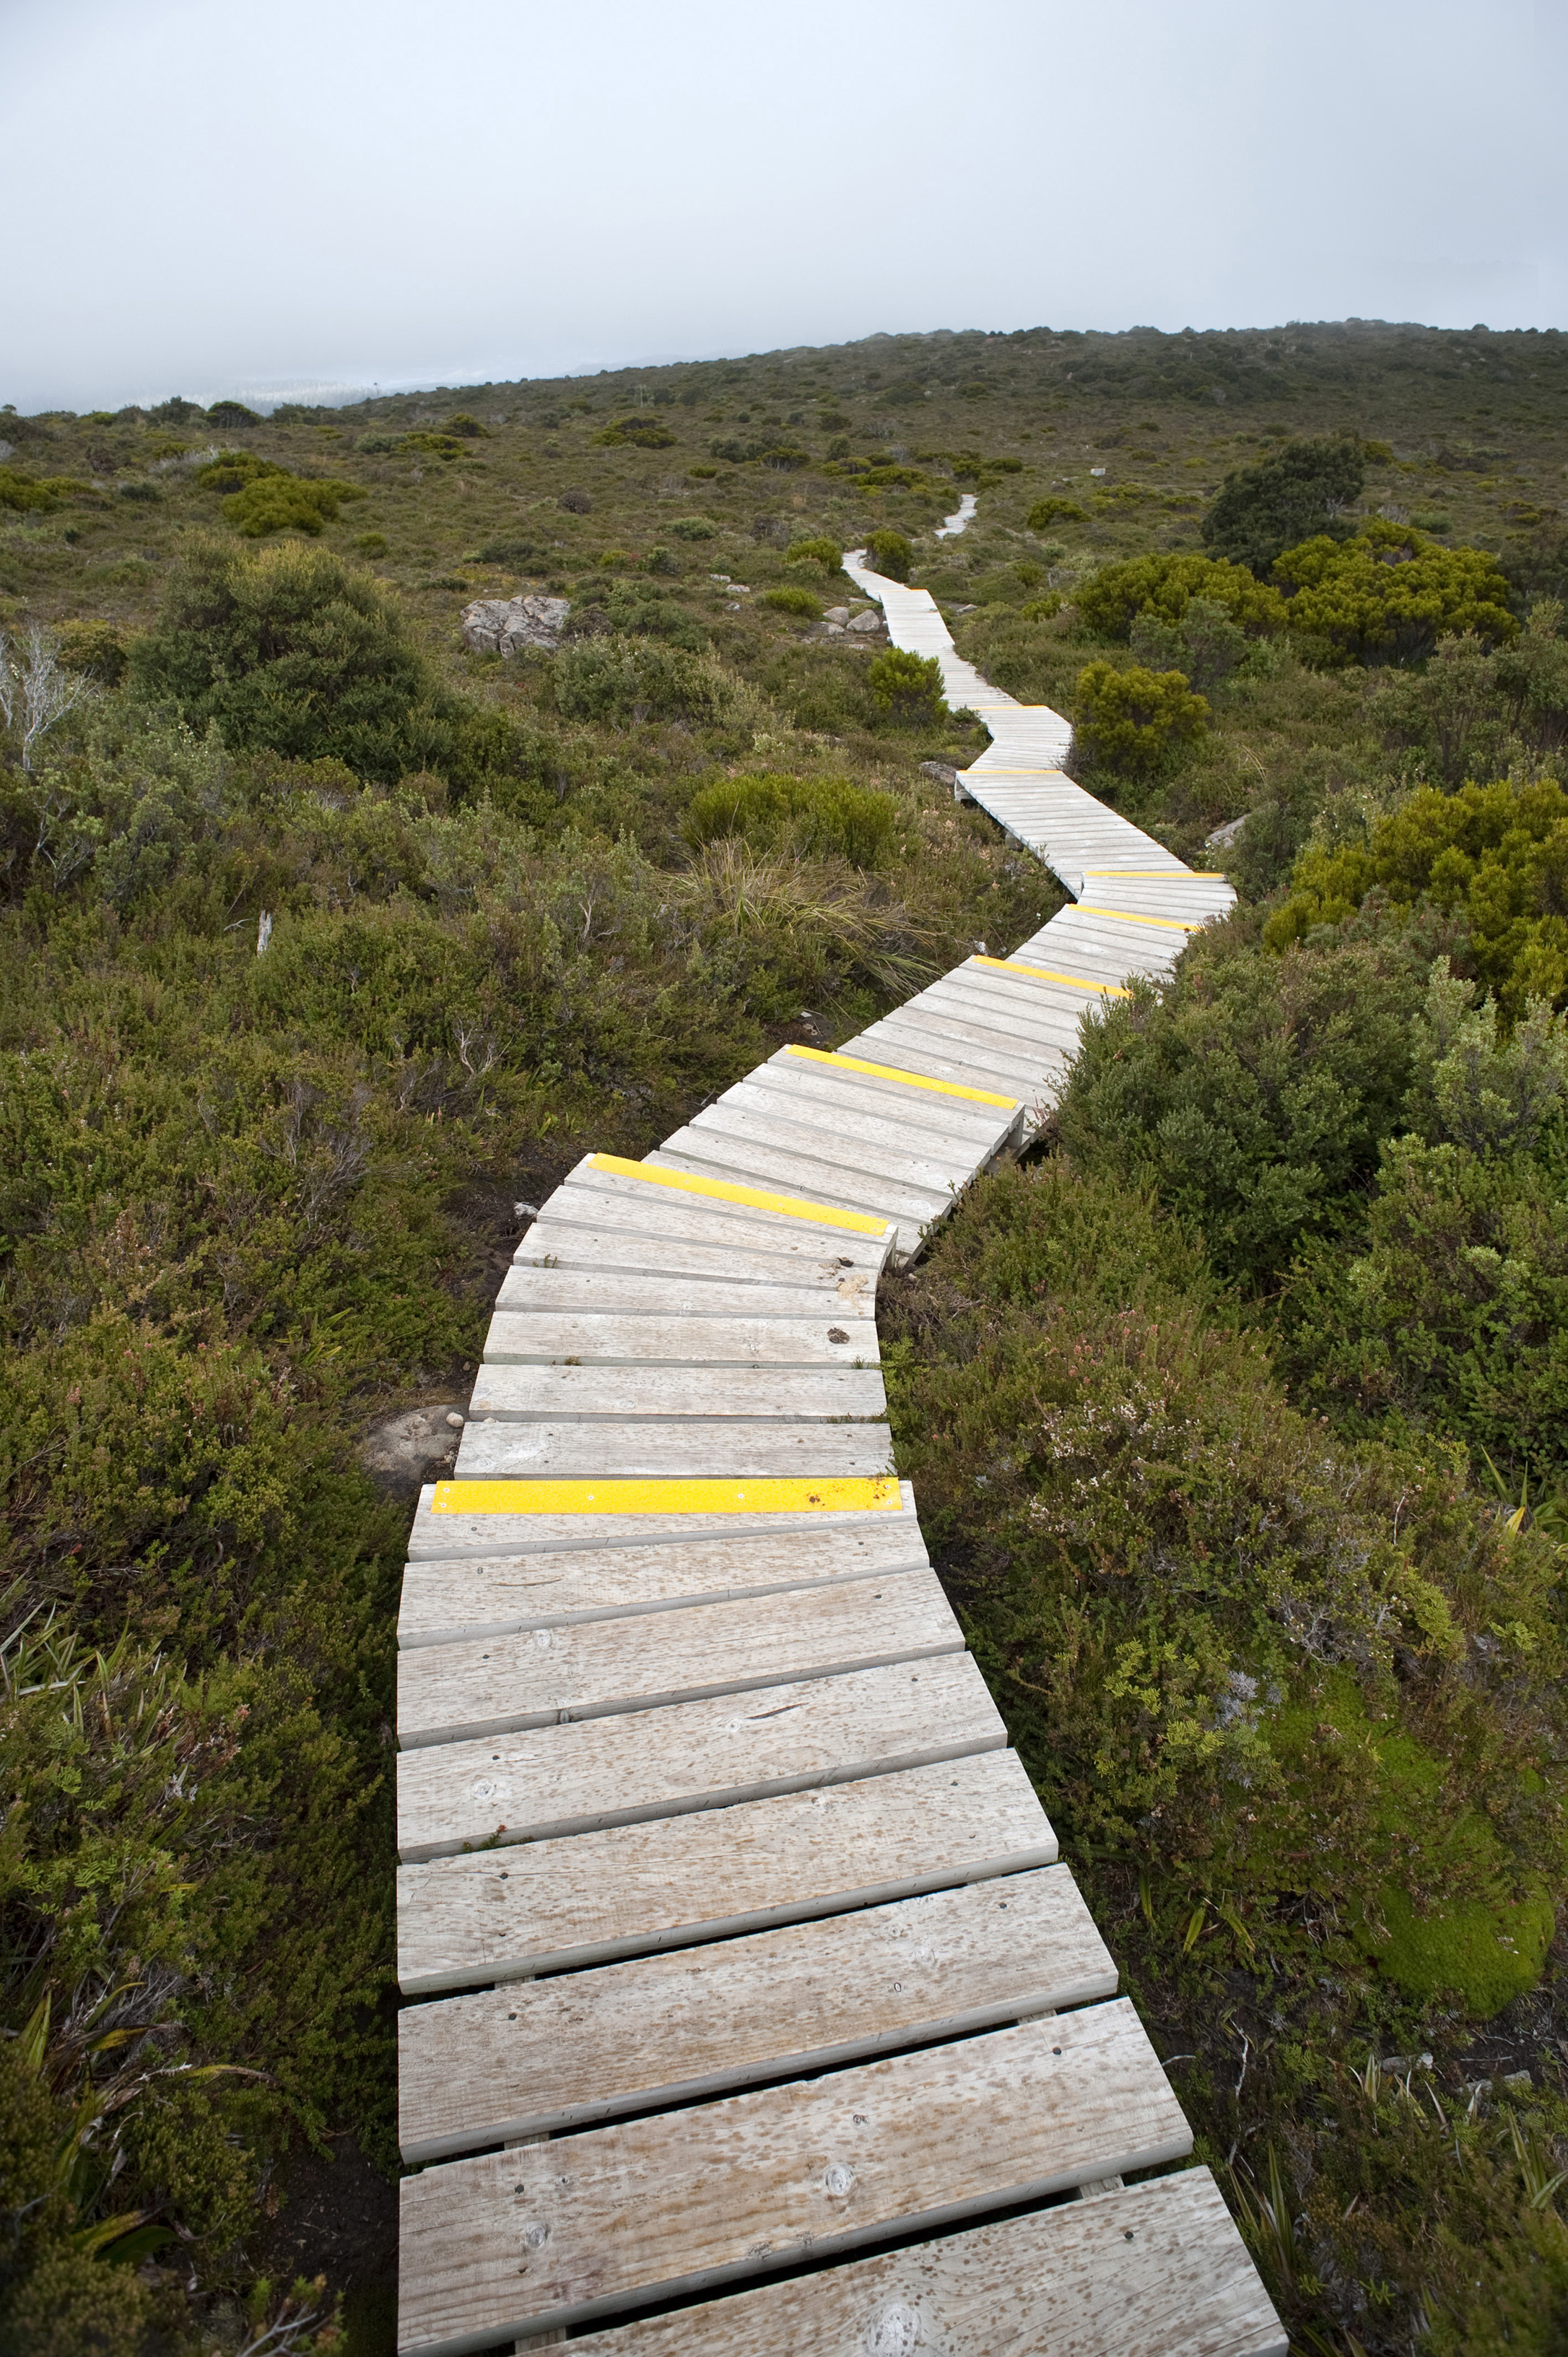 Highland trail with an empty narrow wooden boardwalk meandering across the hilltop into the distance amongst low shrubs of alpine vegetation